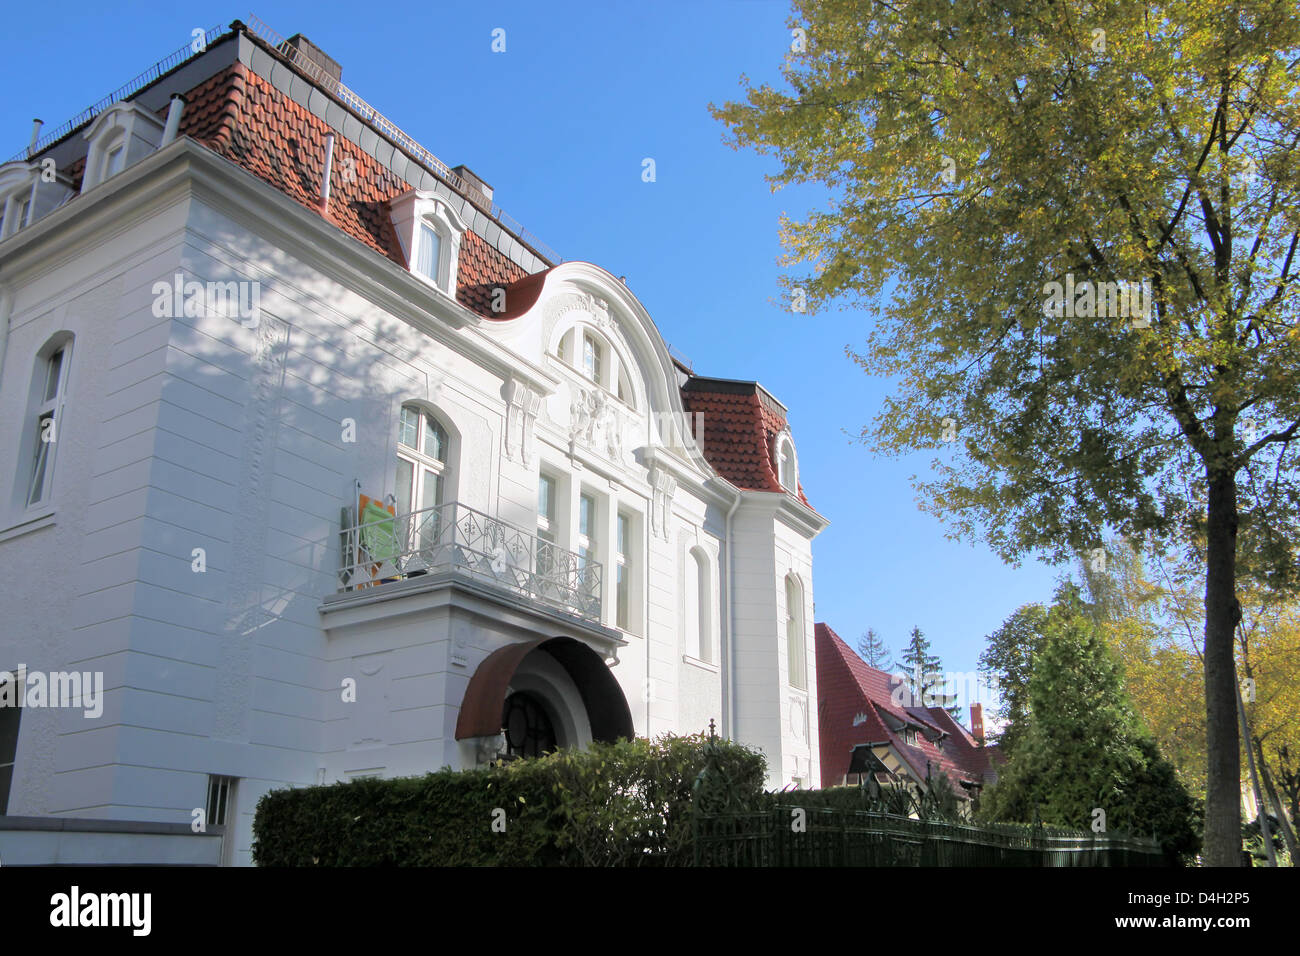 Period of promotion style house in residential area in Wiesbaden, Hesse, Germany - Stock Image